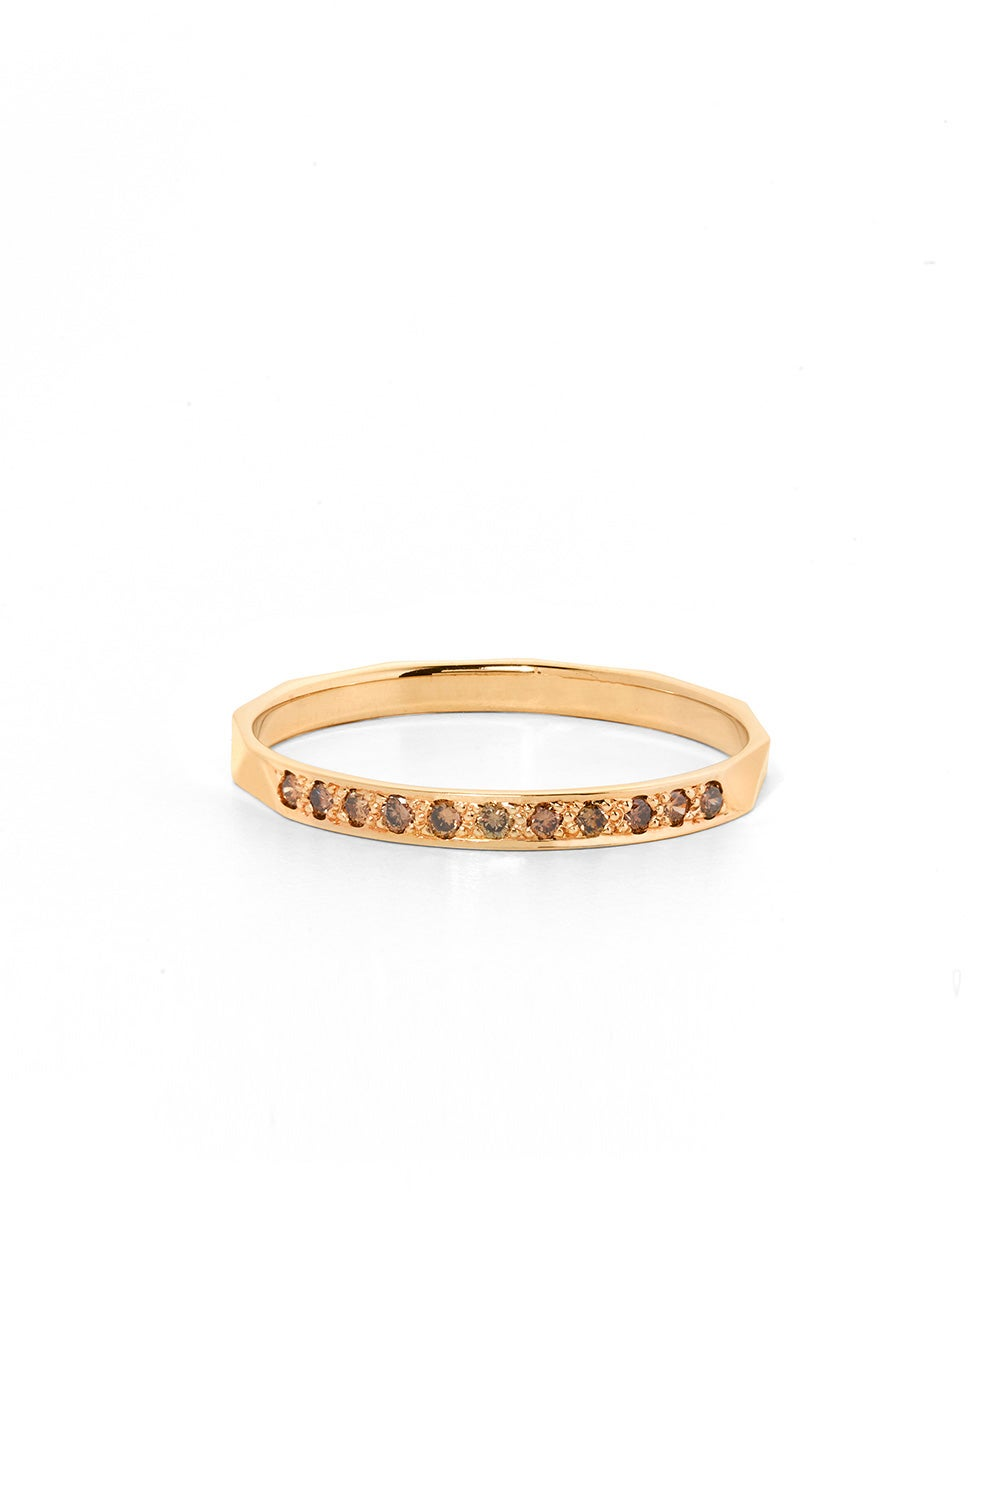 Blessing Band, Gold, Champagne Diamond